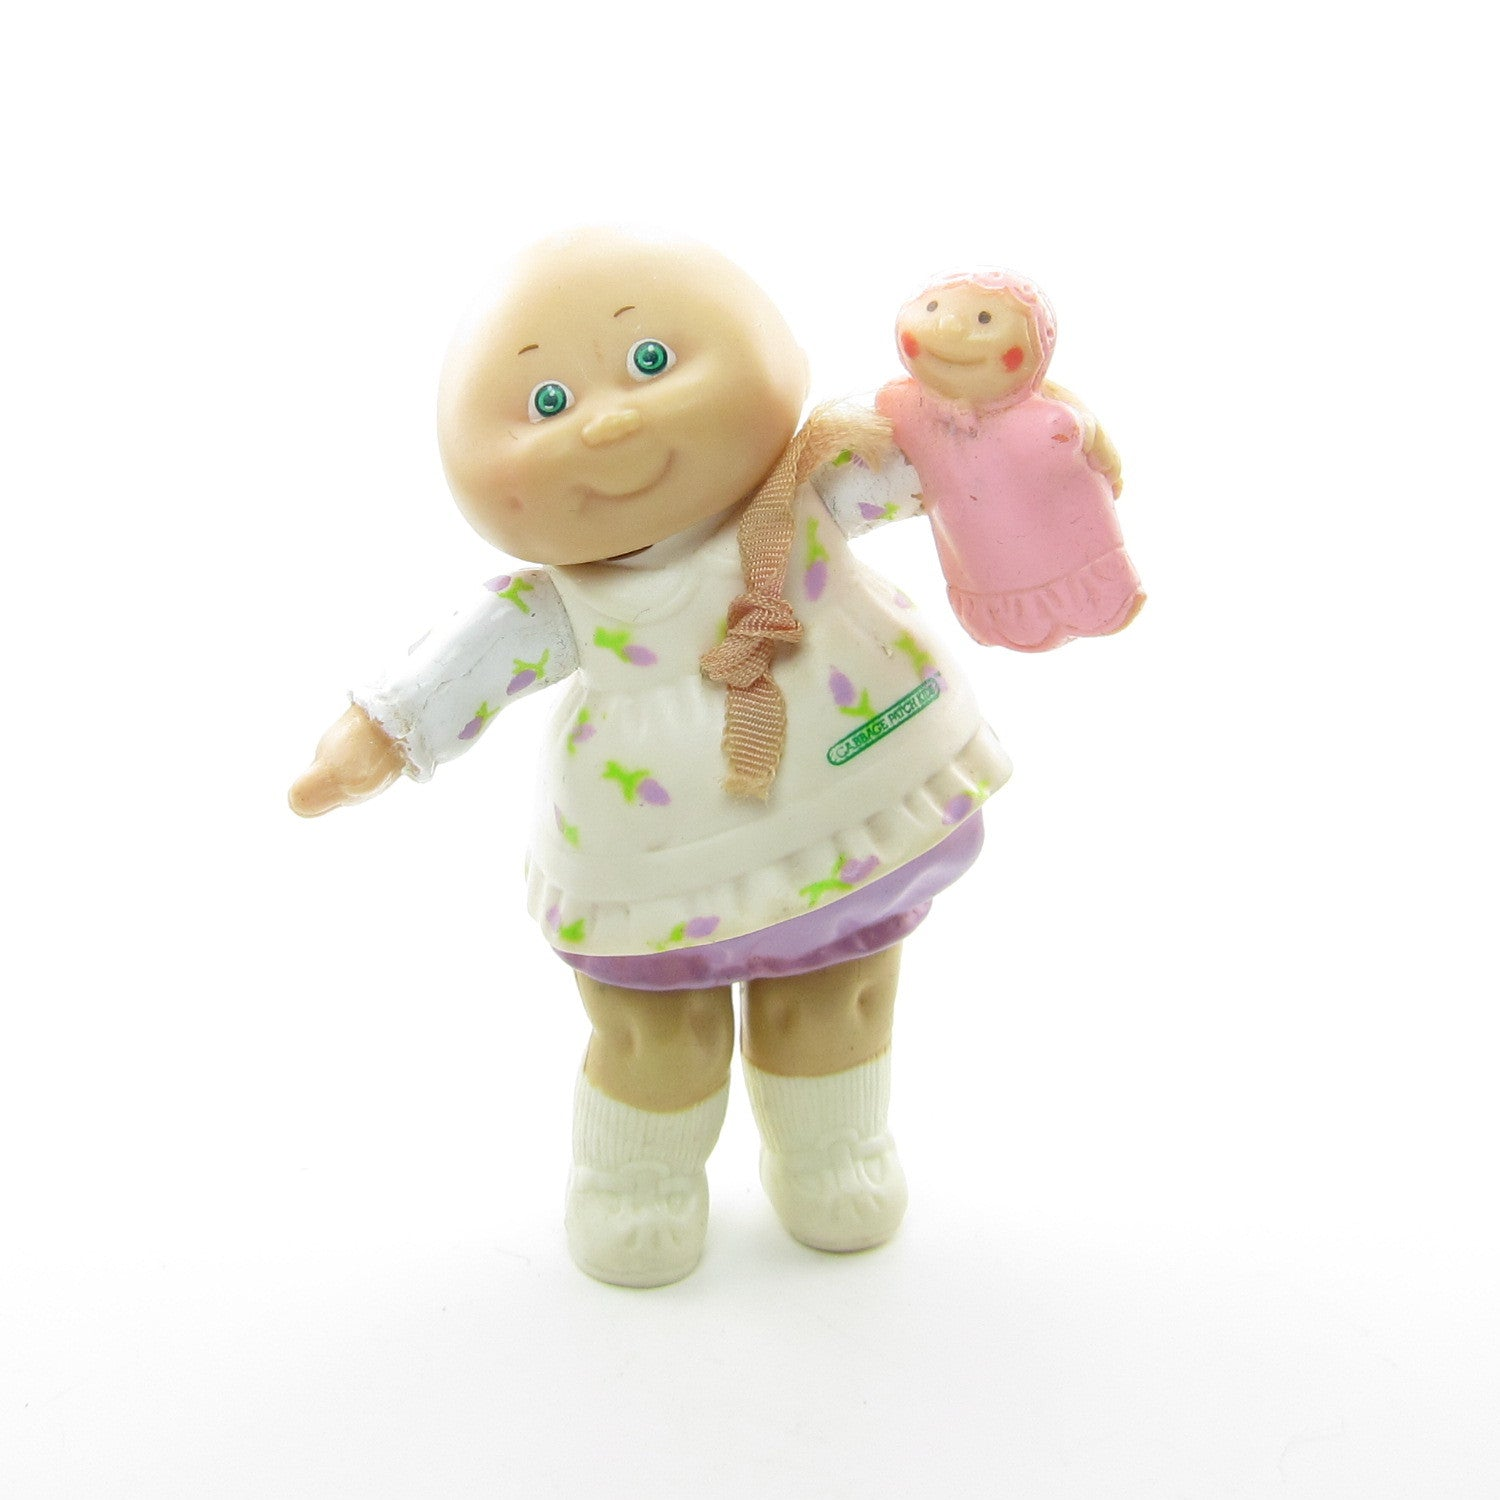 Preemie girl poseable Cabbage Patch Kids toy with baby doll